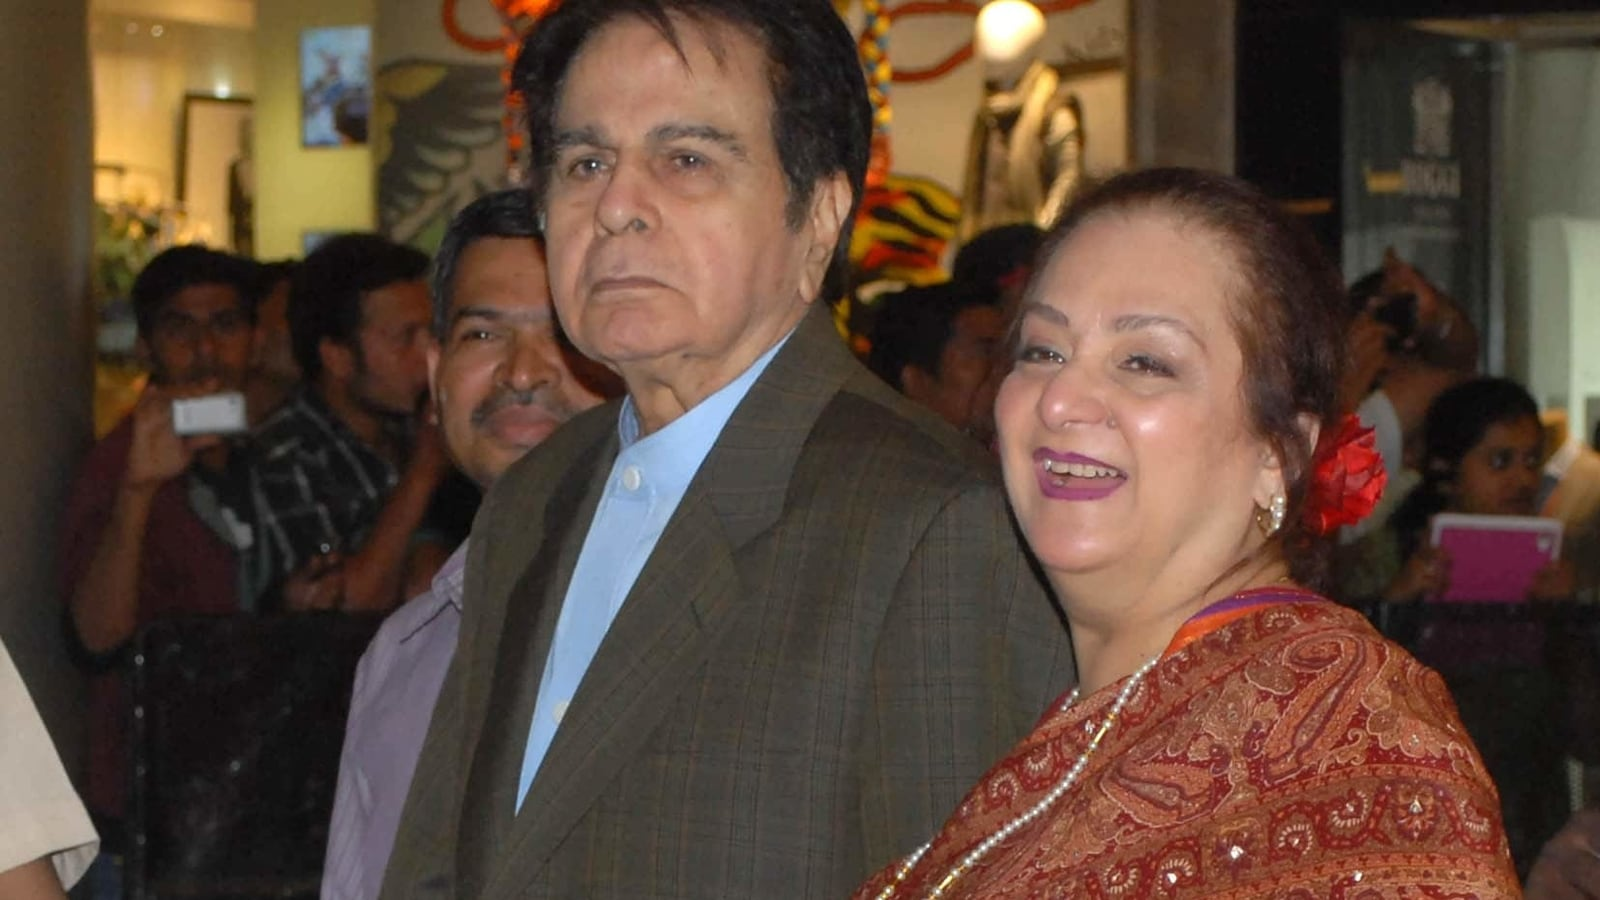 When Dilip Kumar spoke about not having a child to carry forward his legacy: 'We have no regrets'   Bollywood - Hindustan Times